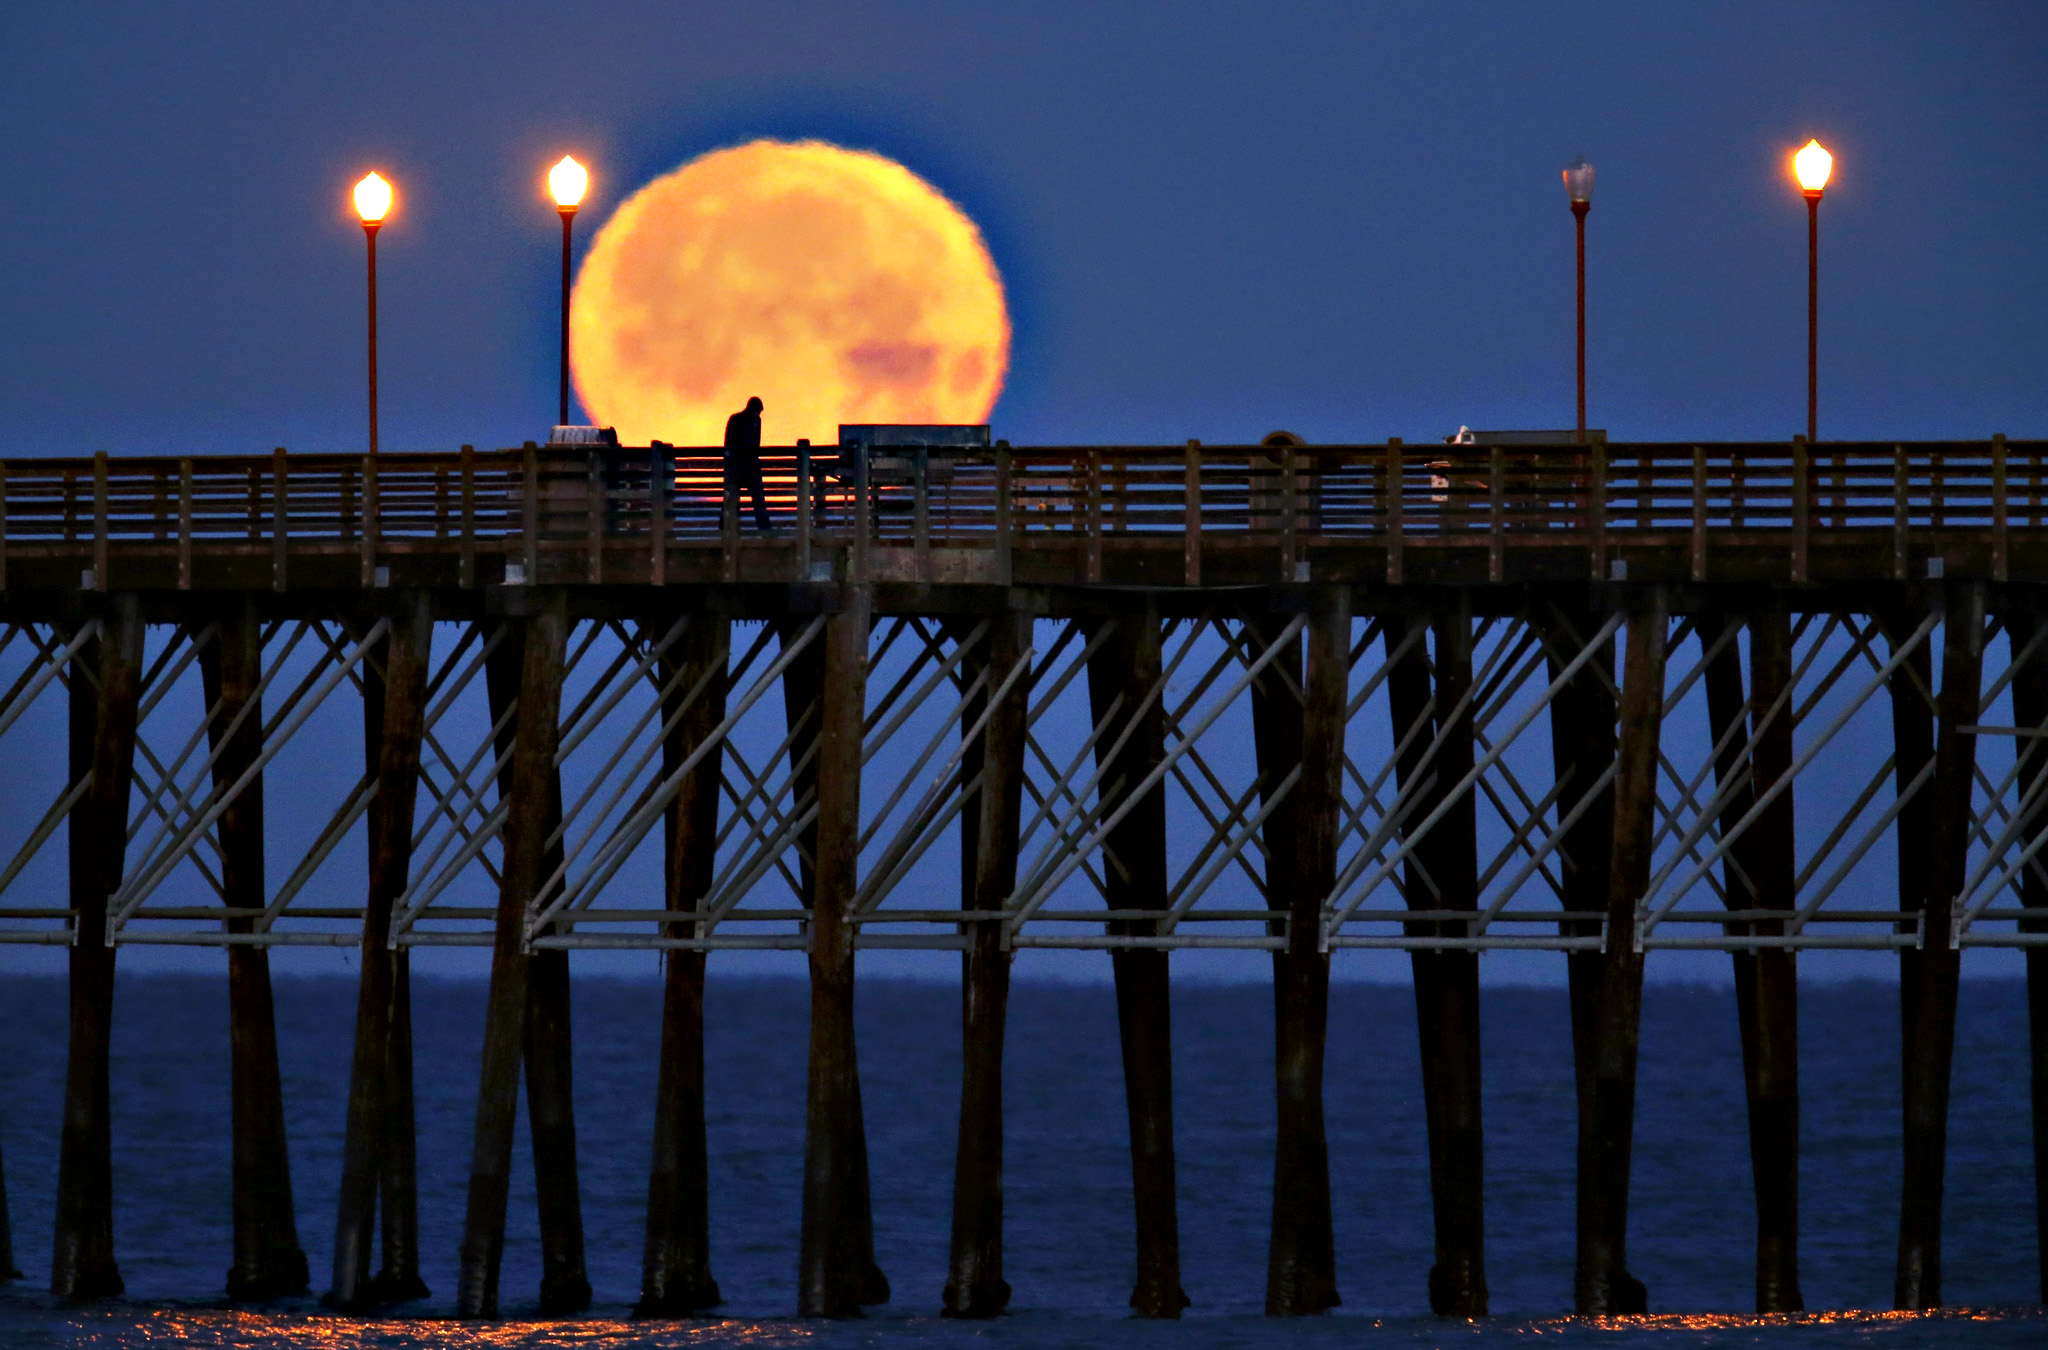 The moon sets in the early morning hours as a man walks along an ocean pier in Oceanside, California on Thursday